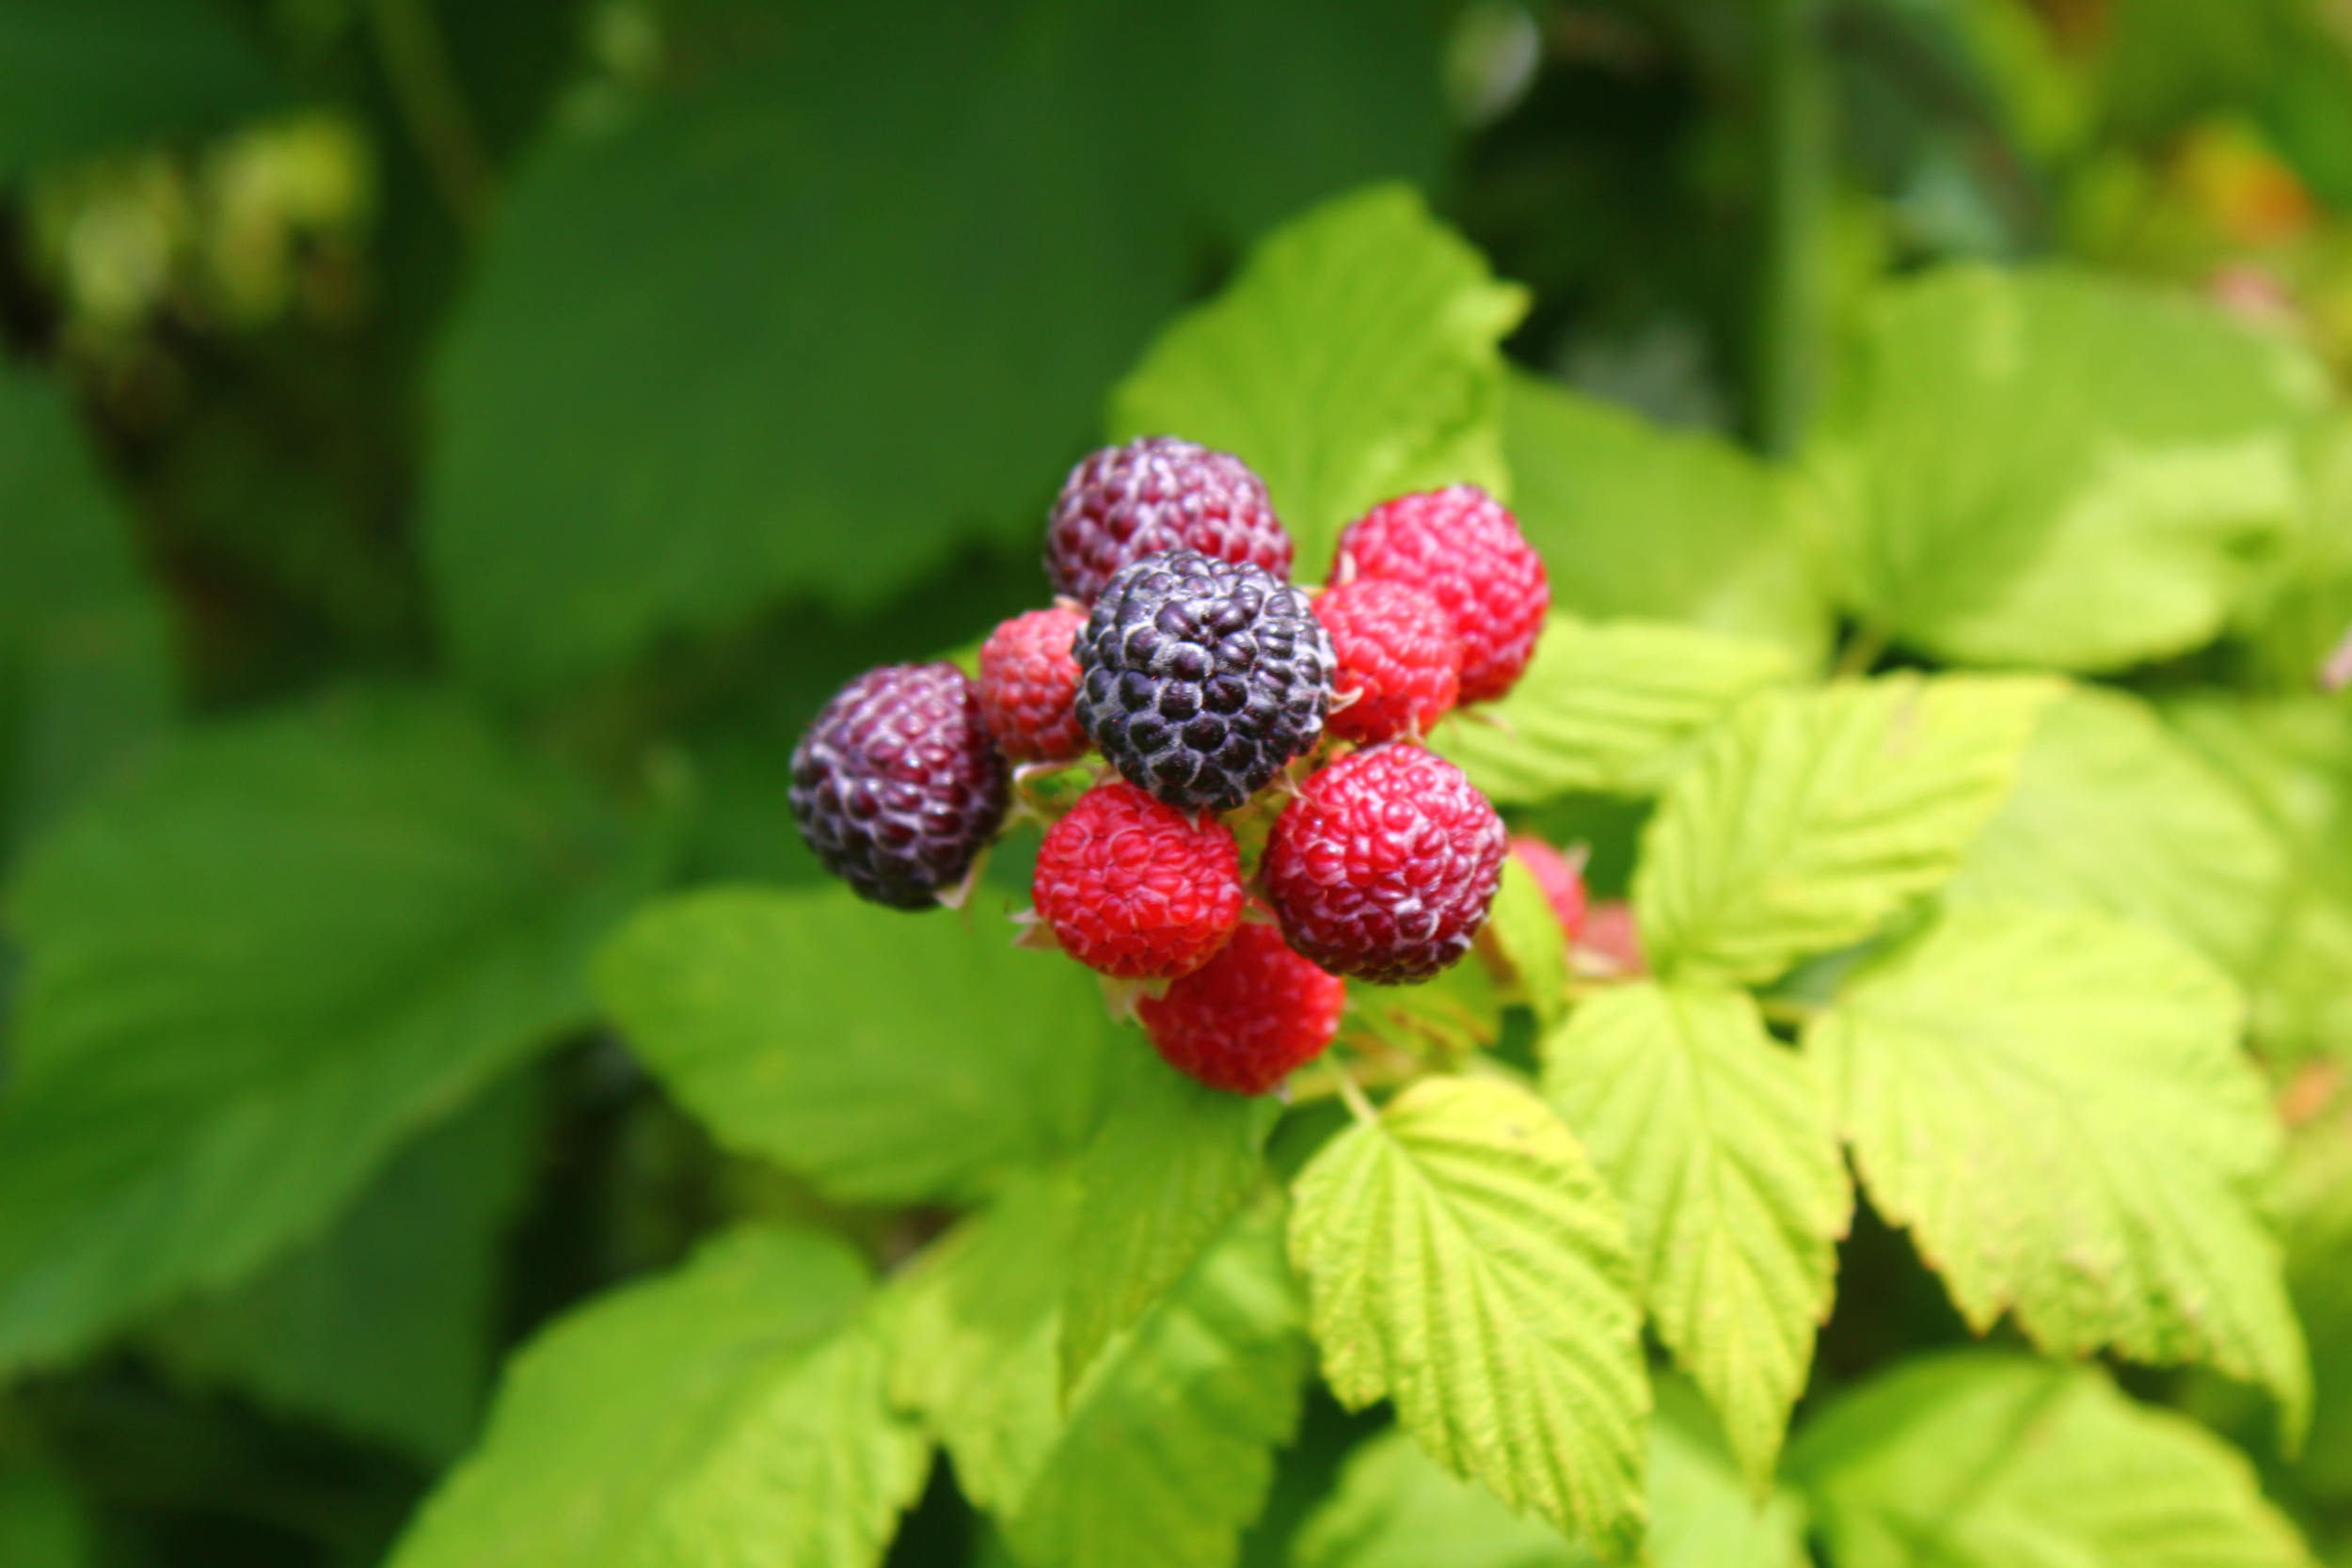 the raspberies were not quite ready to be picked just yet